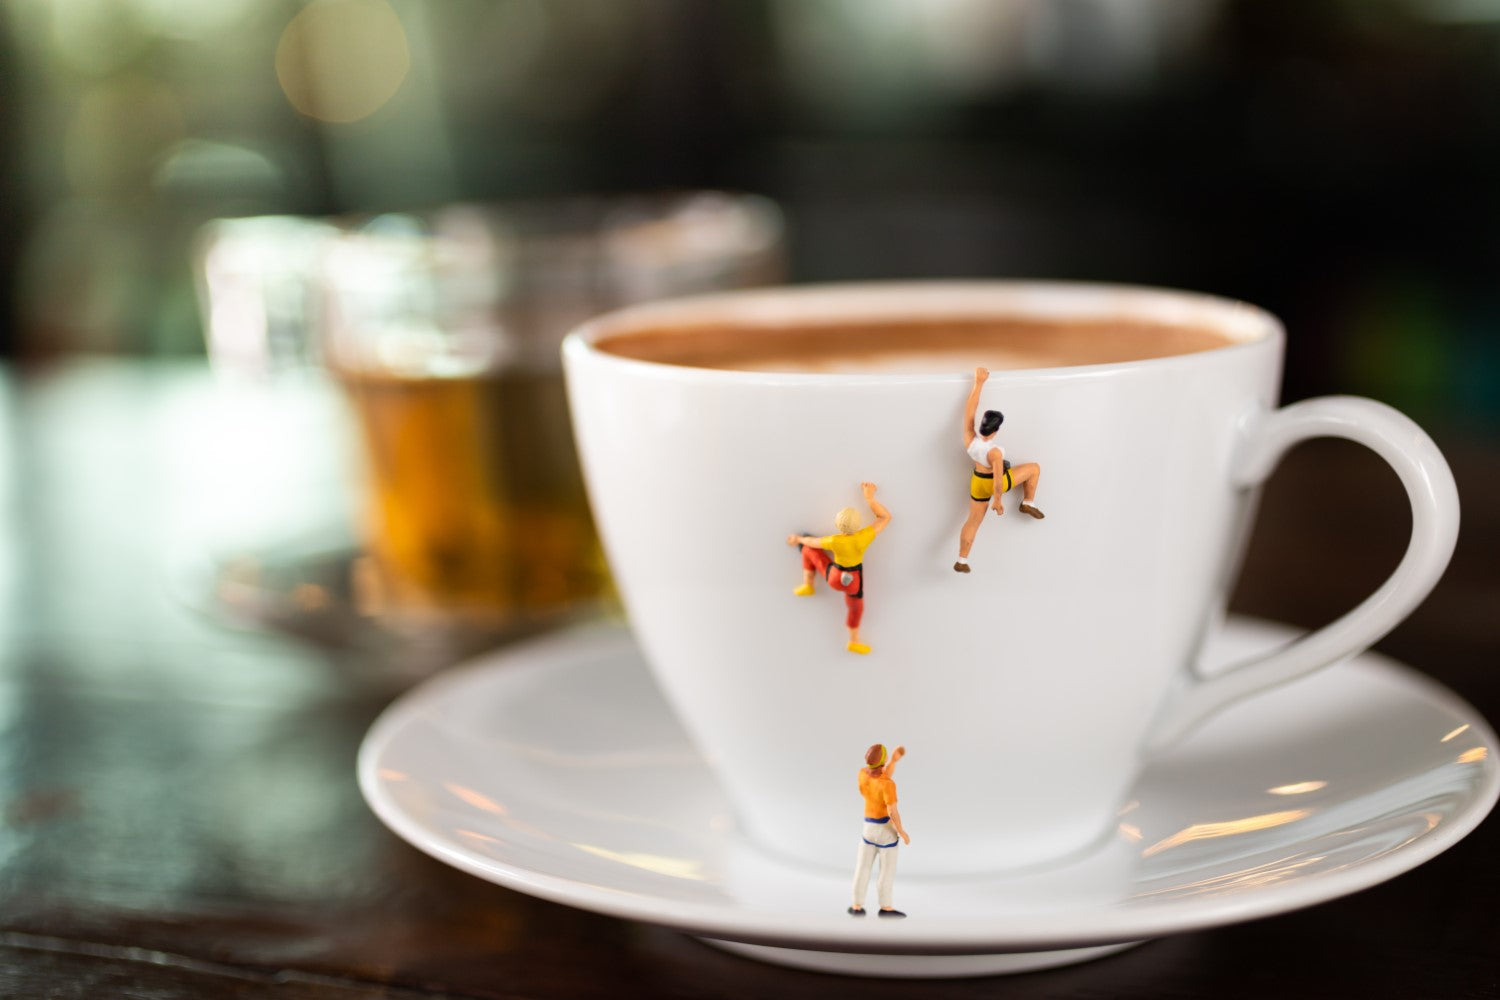 cup of coffee with small people climbing